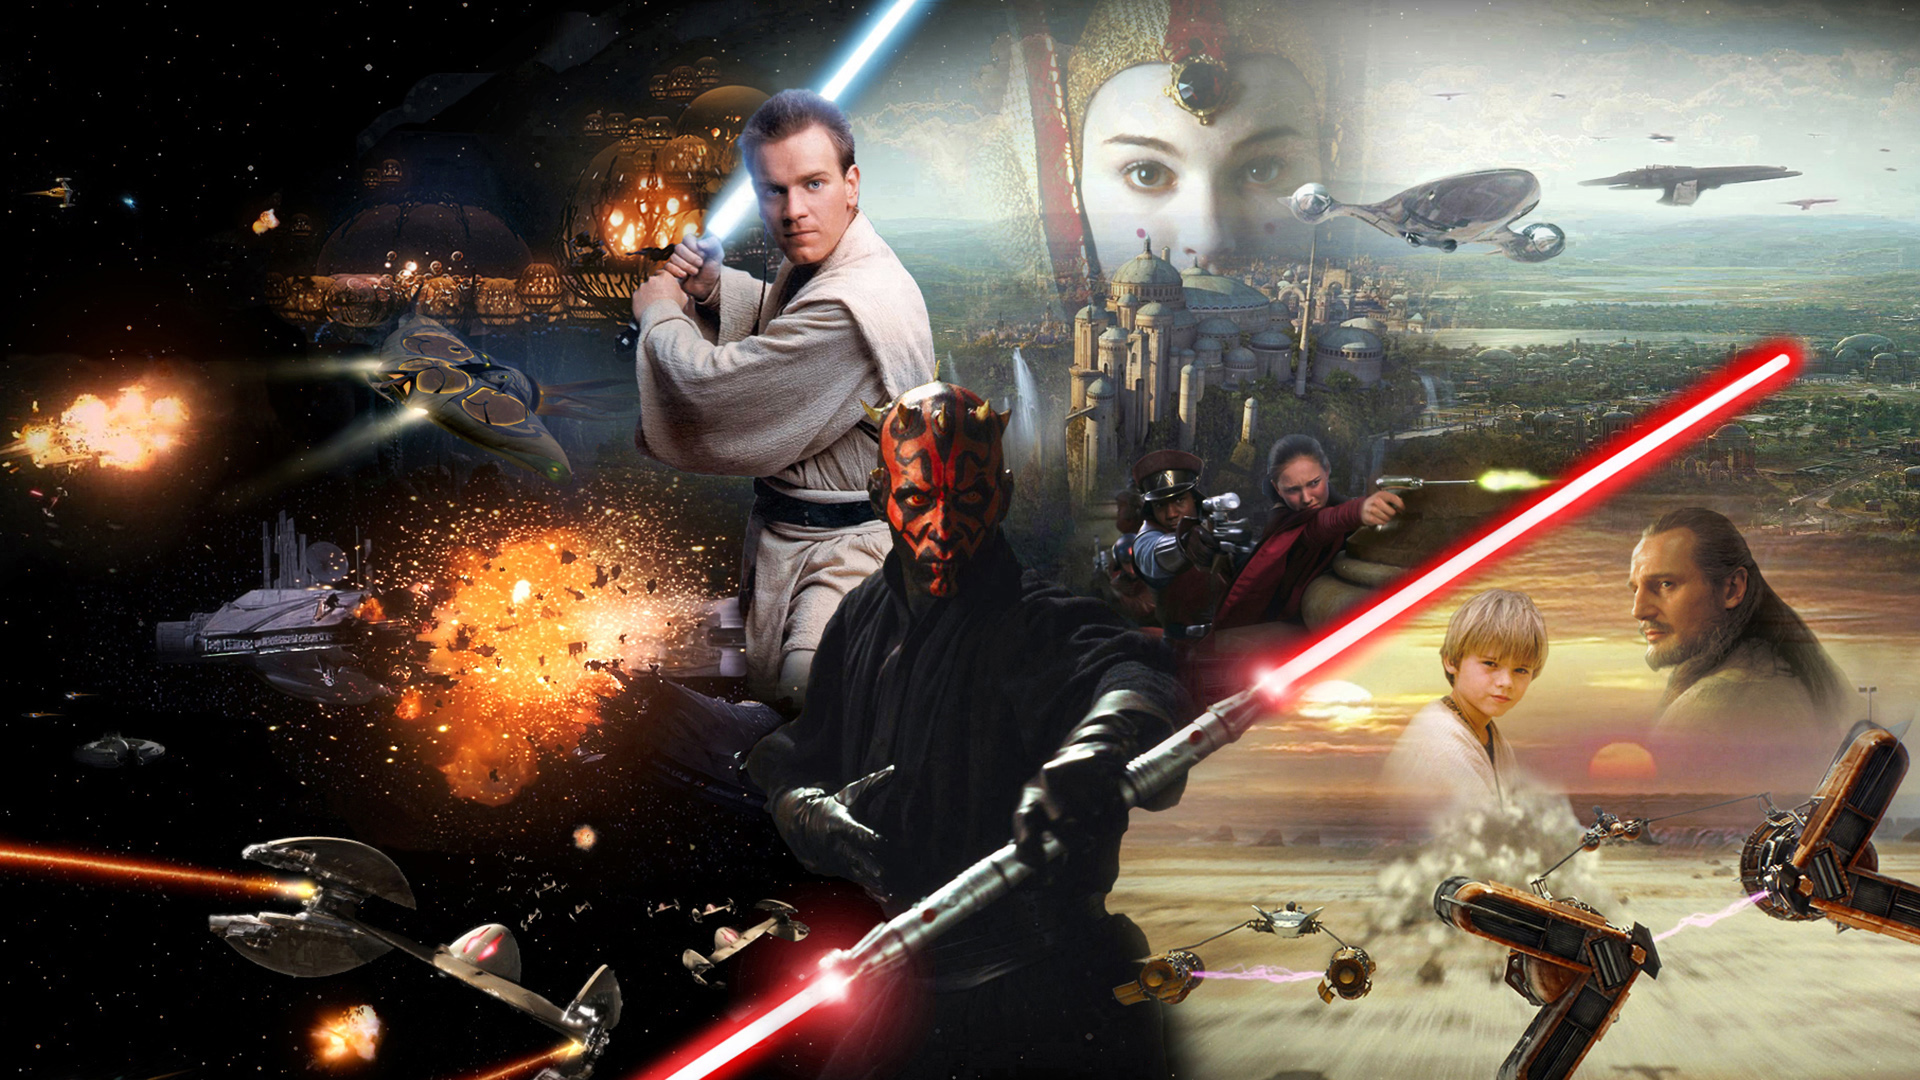 Star Wars Episode I The Phantom Menace Hd Wallpaper